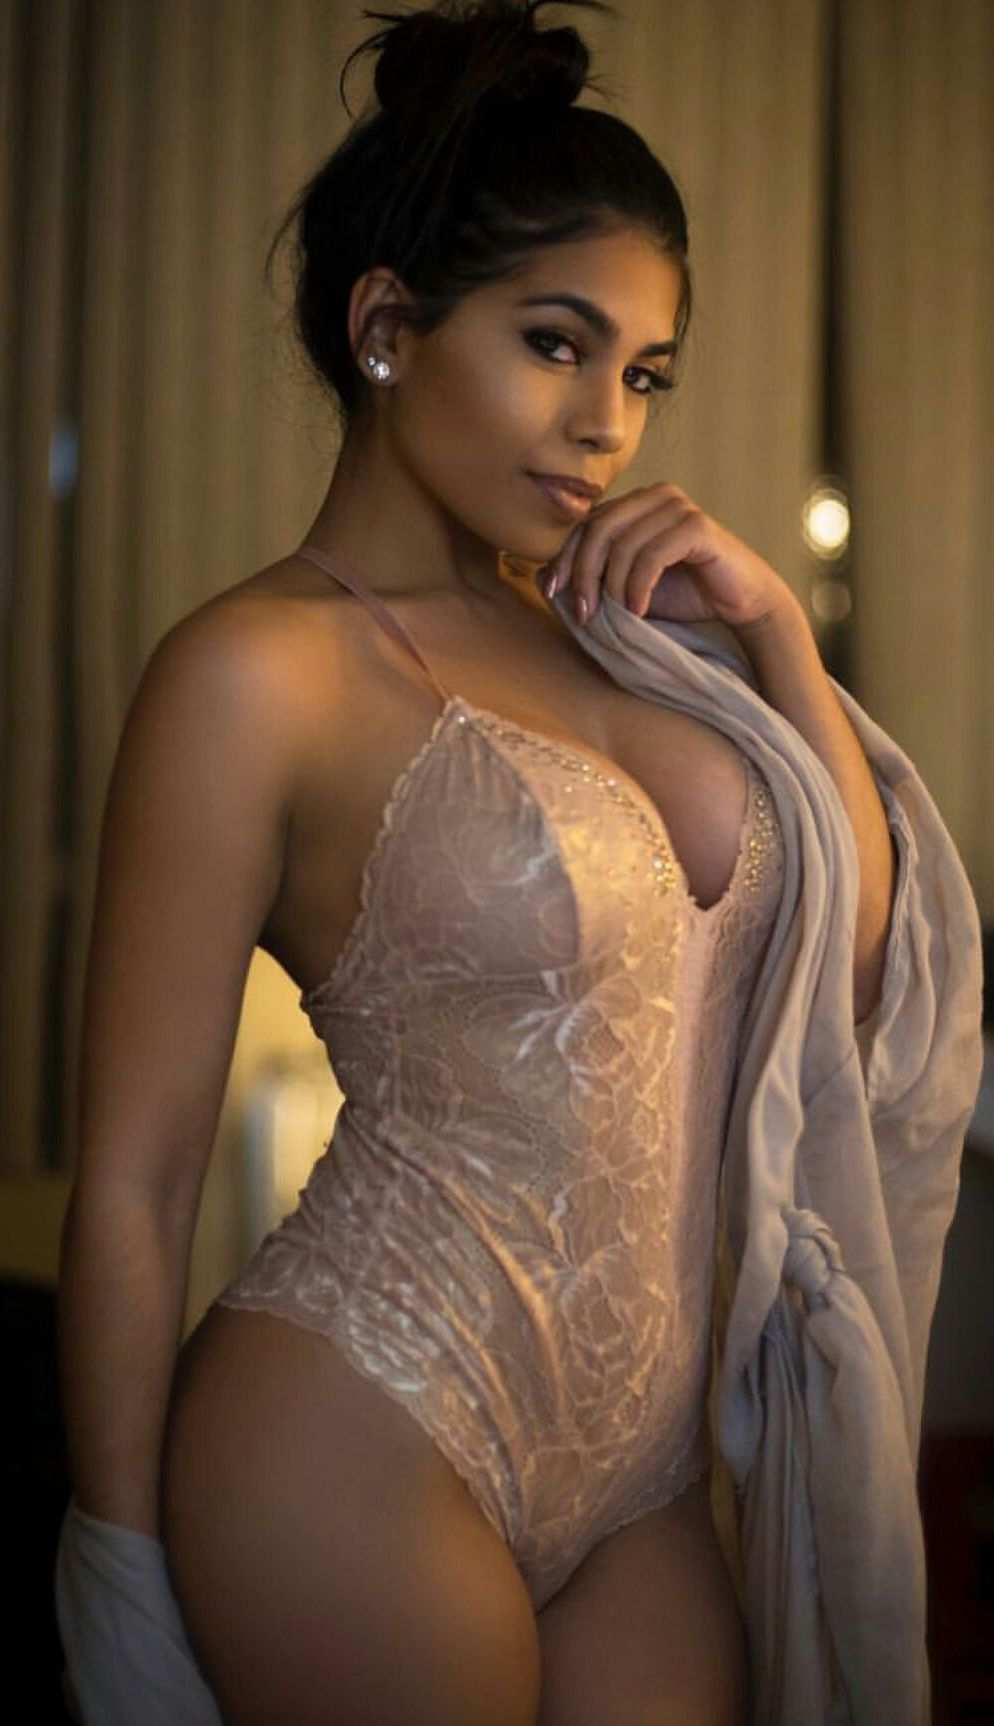 Spend Good Time With My Cheap Independent Escorts In Mumbai For Sexual Pleasure.